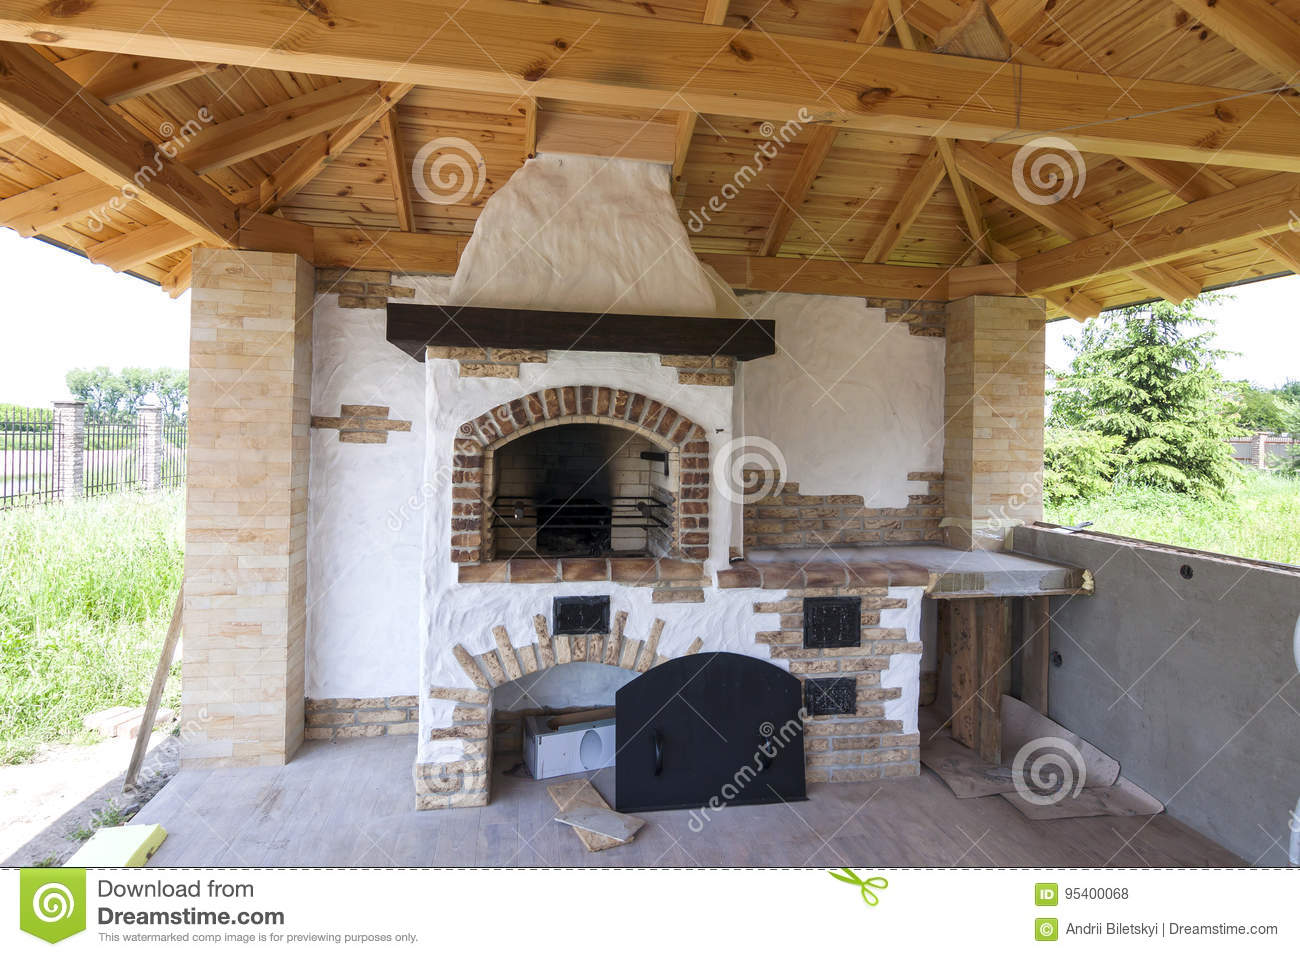 Architecture, house old style, porch with grill fireplace outdoors